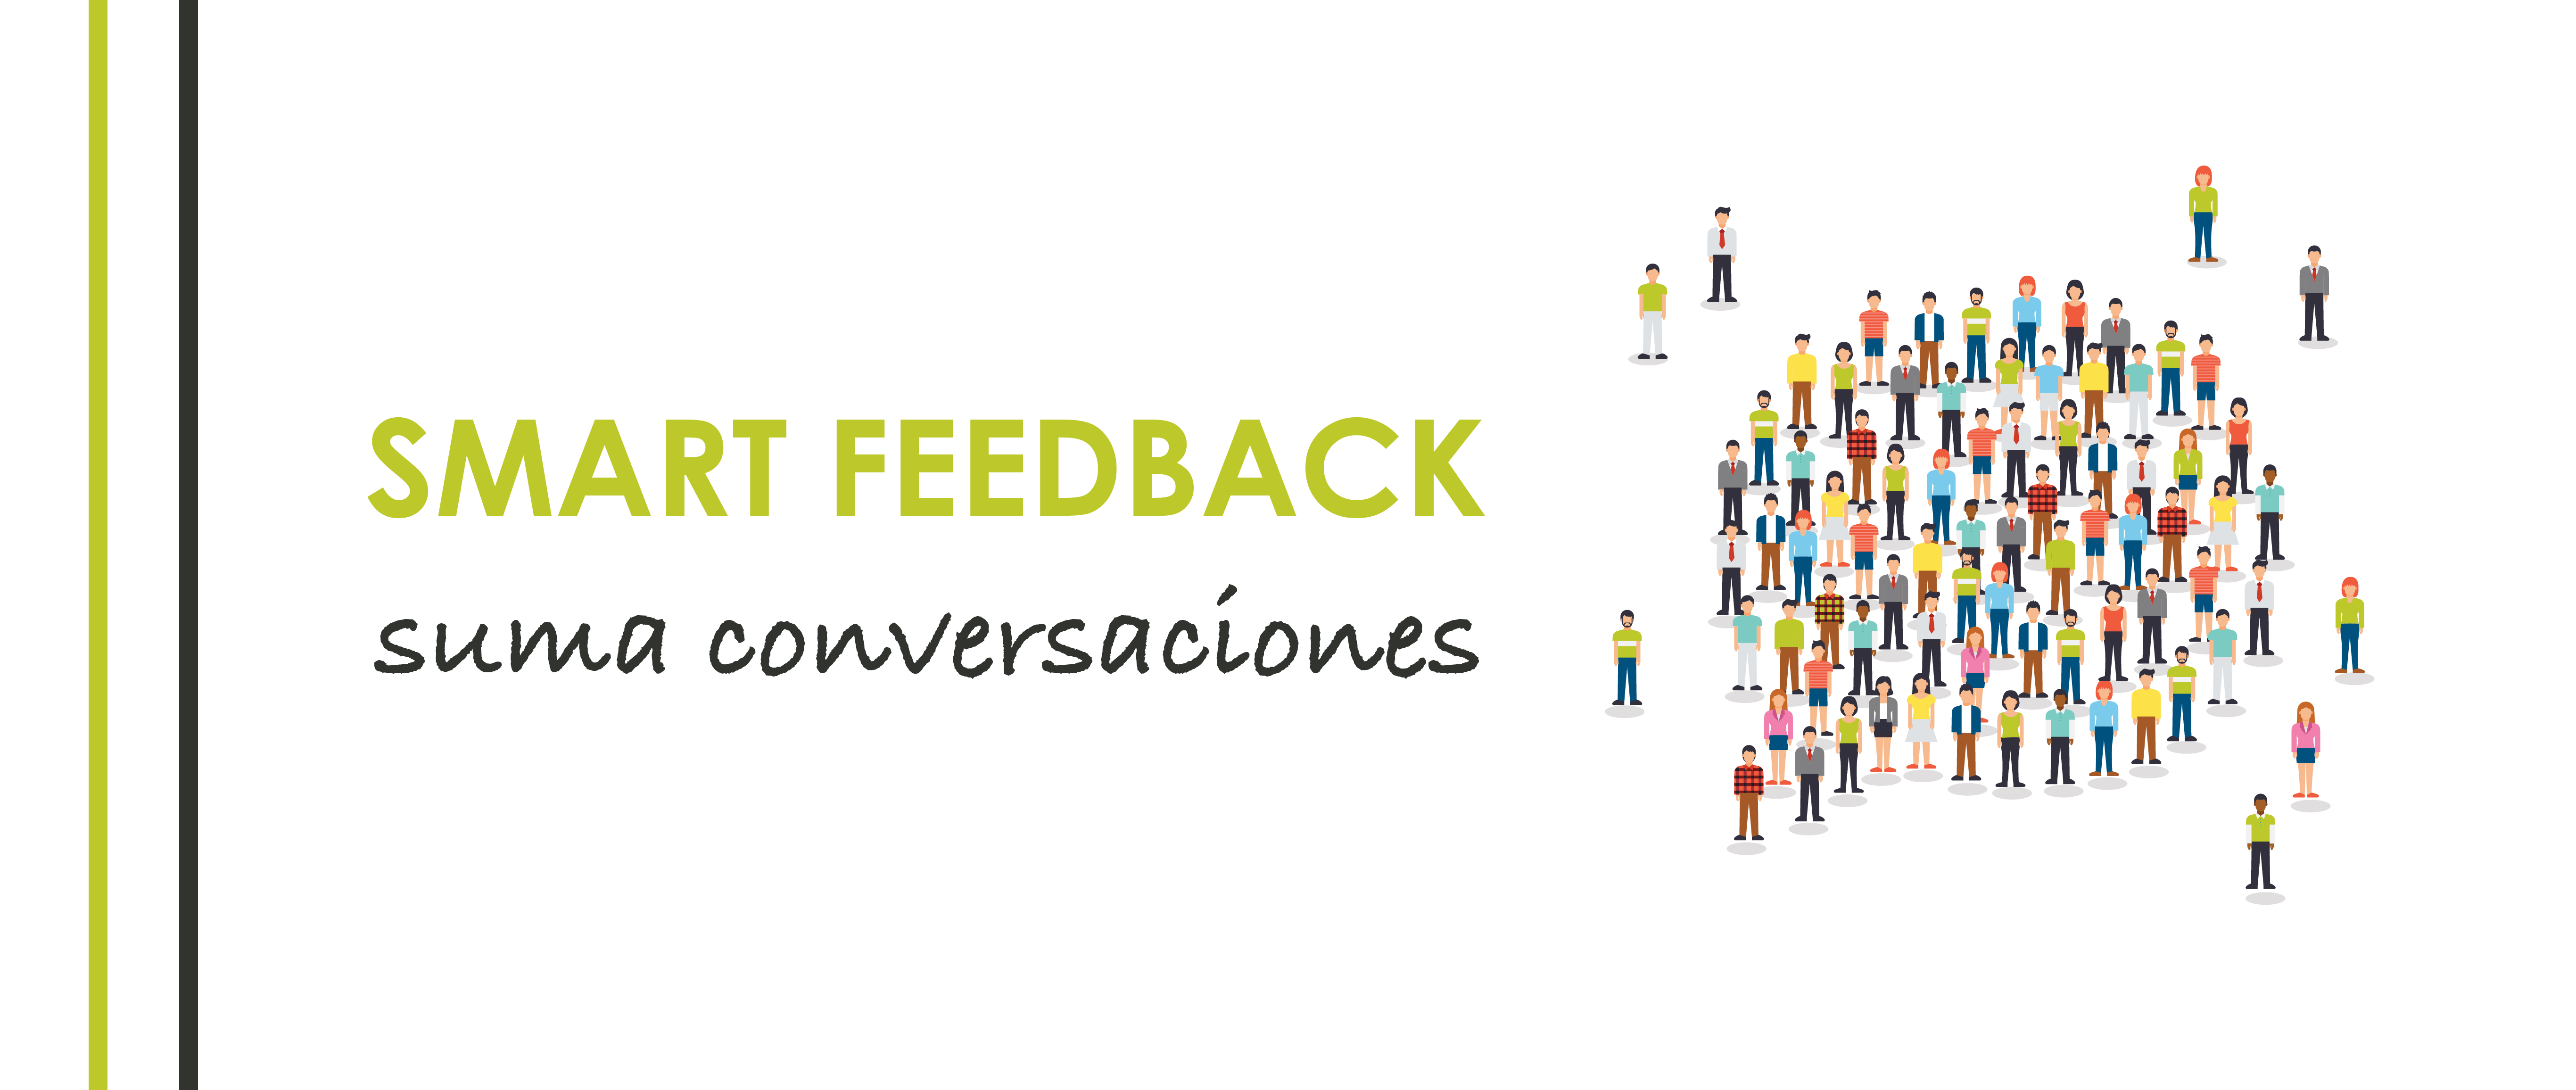 Smart Feedback suma conversaciones en junio